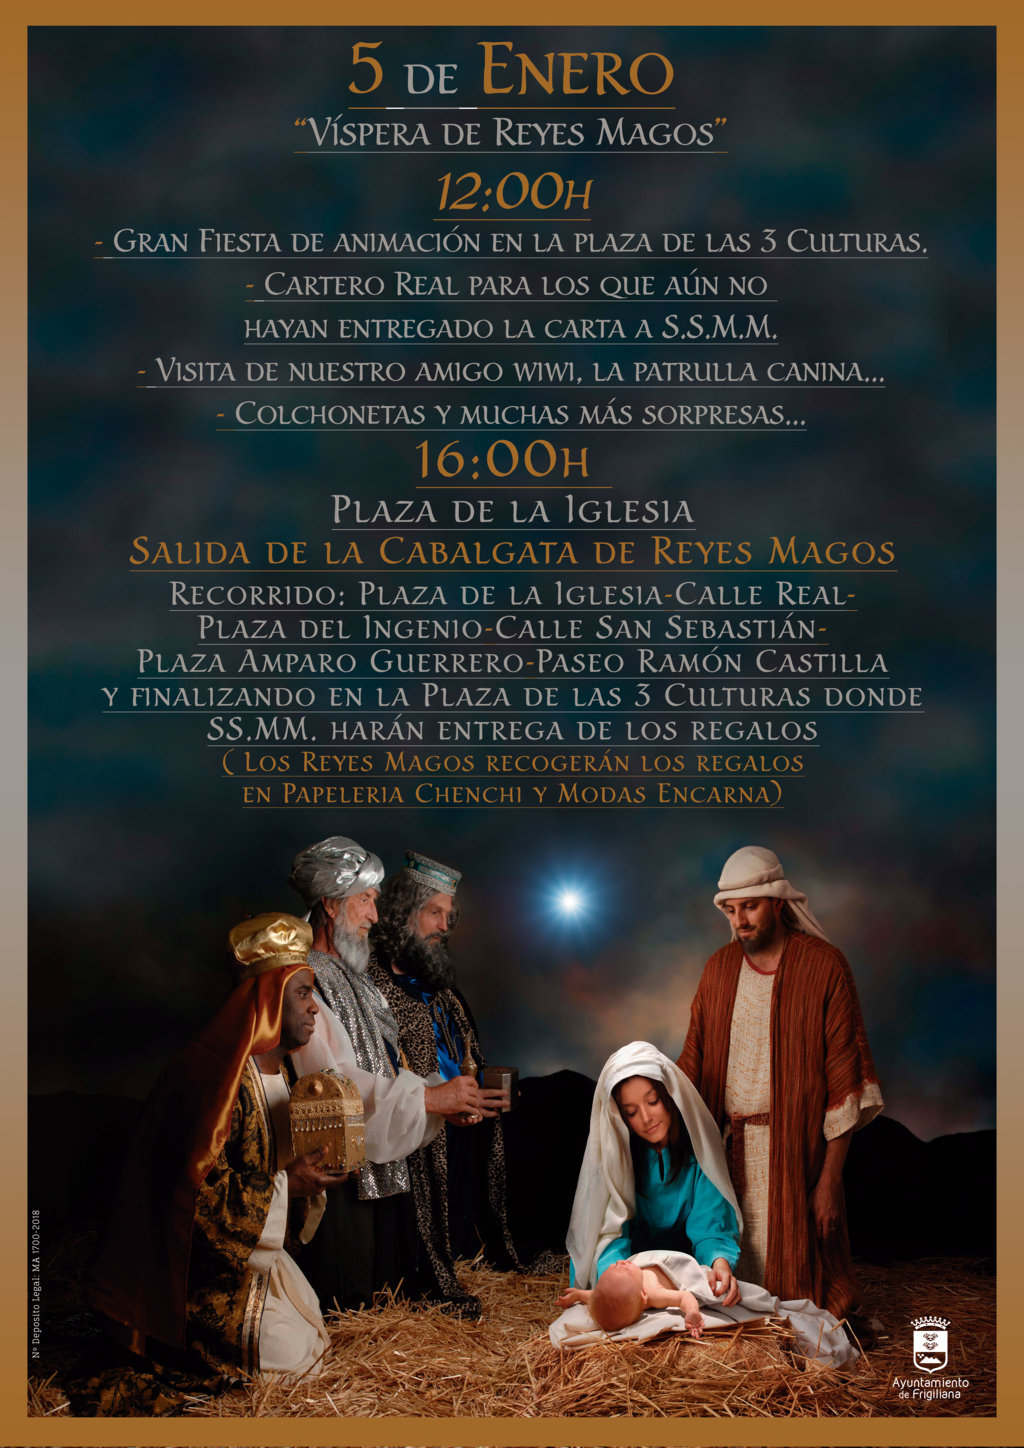 Los Reyes Magos will tour Frigiliana on January 5